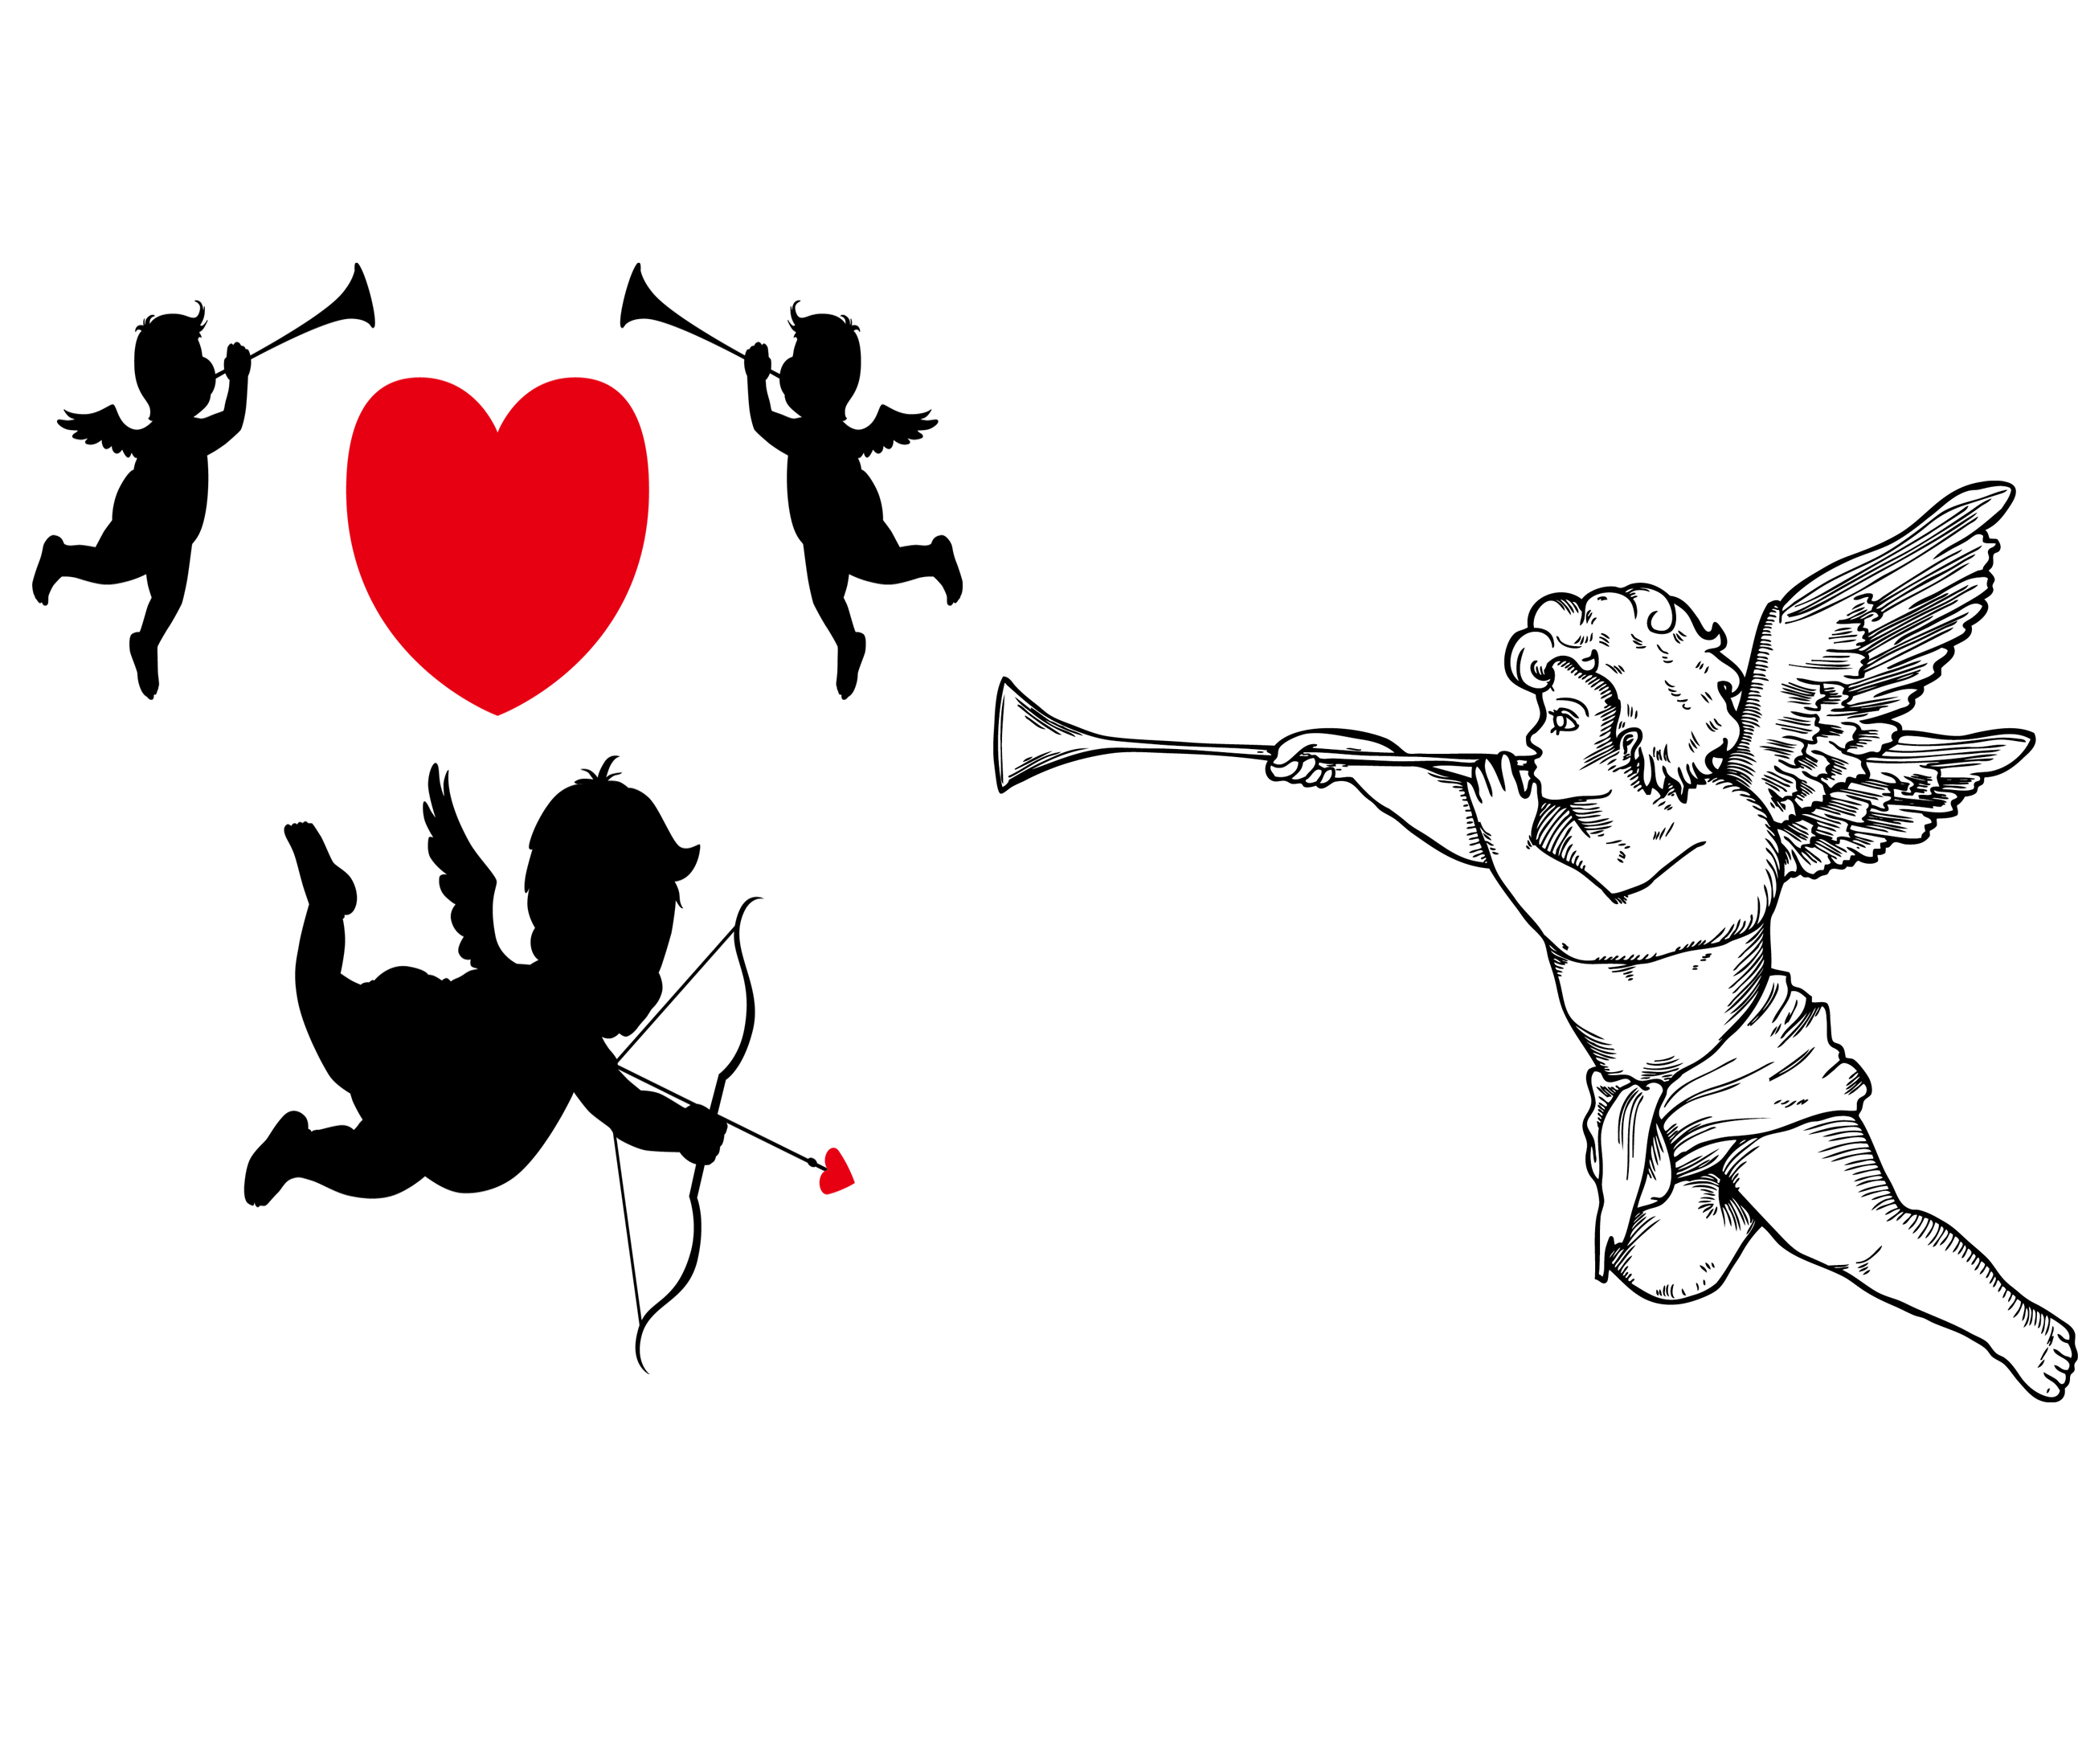 Cupid silhouette png. Clip art and sculpture